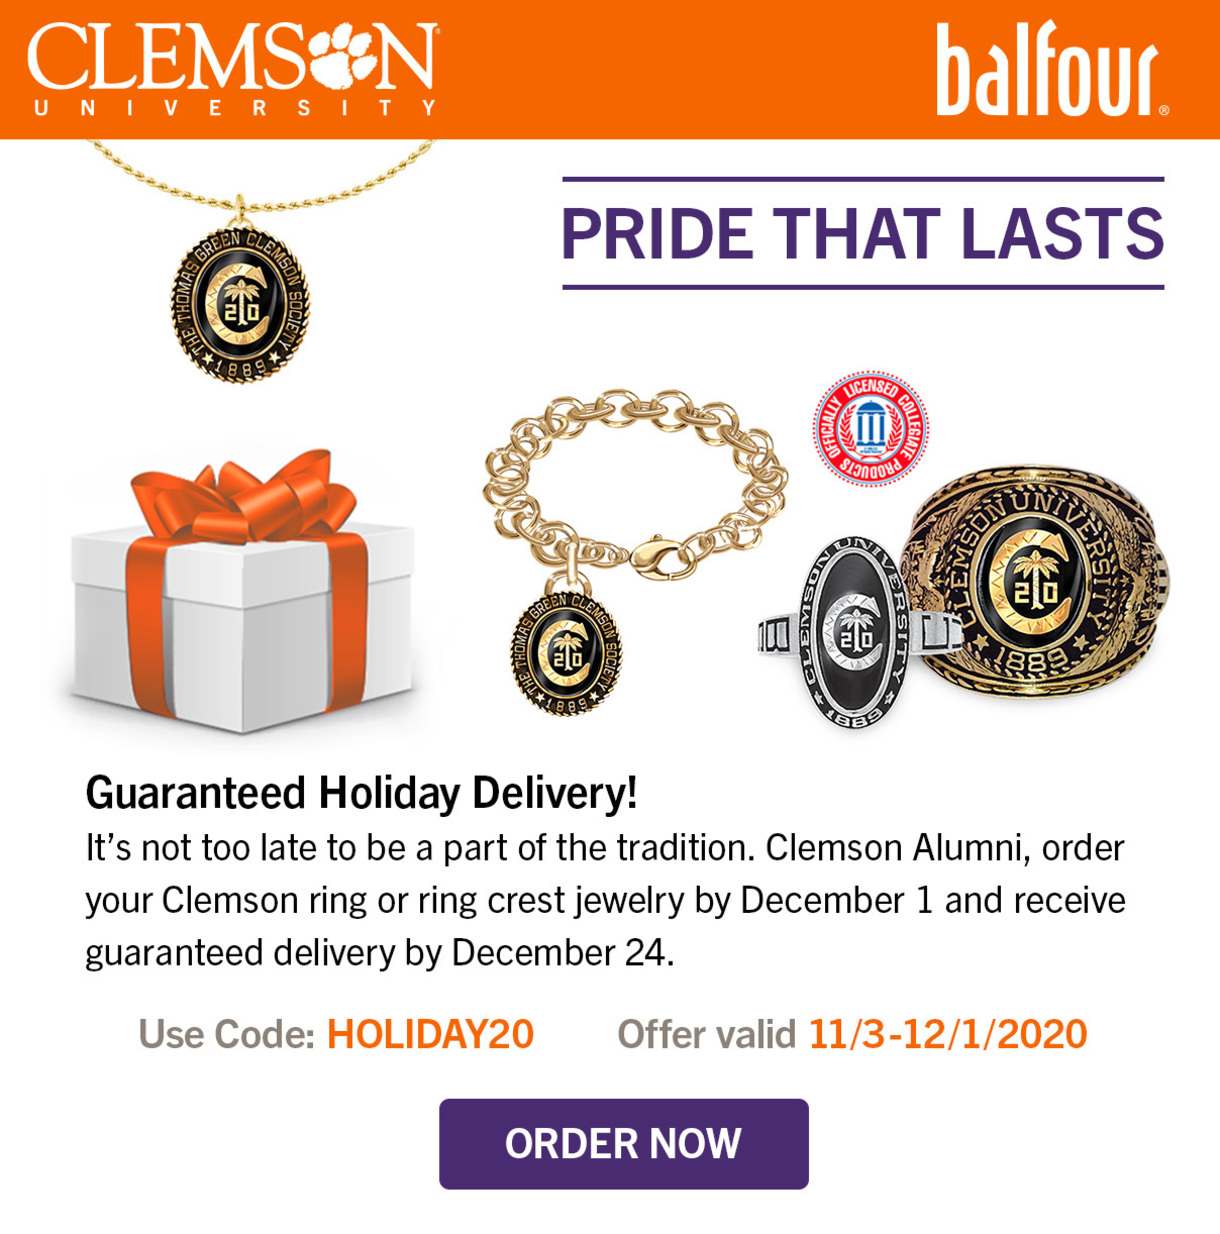 Clemson Universtiy, Balfour - Pride that Lasts. Guaranteed Holiday Delivery! It's not too late to be a part of the tradition. Clemson Alumni, order your Clemson ring or ring crest jewelry by December 1 and receive guaranteed delivery by December 24. Use Code: HOLIDAY20. Offer Valid 11/3-12/1/202. Order now.